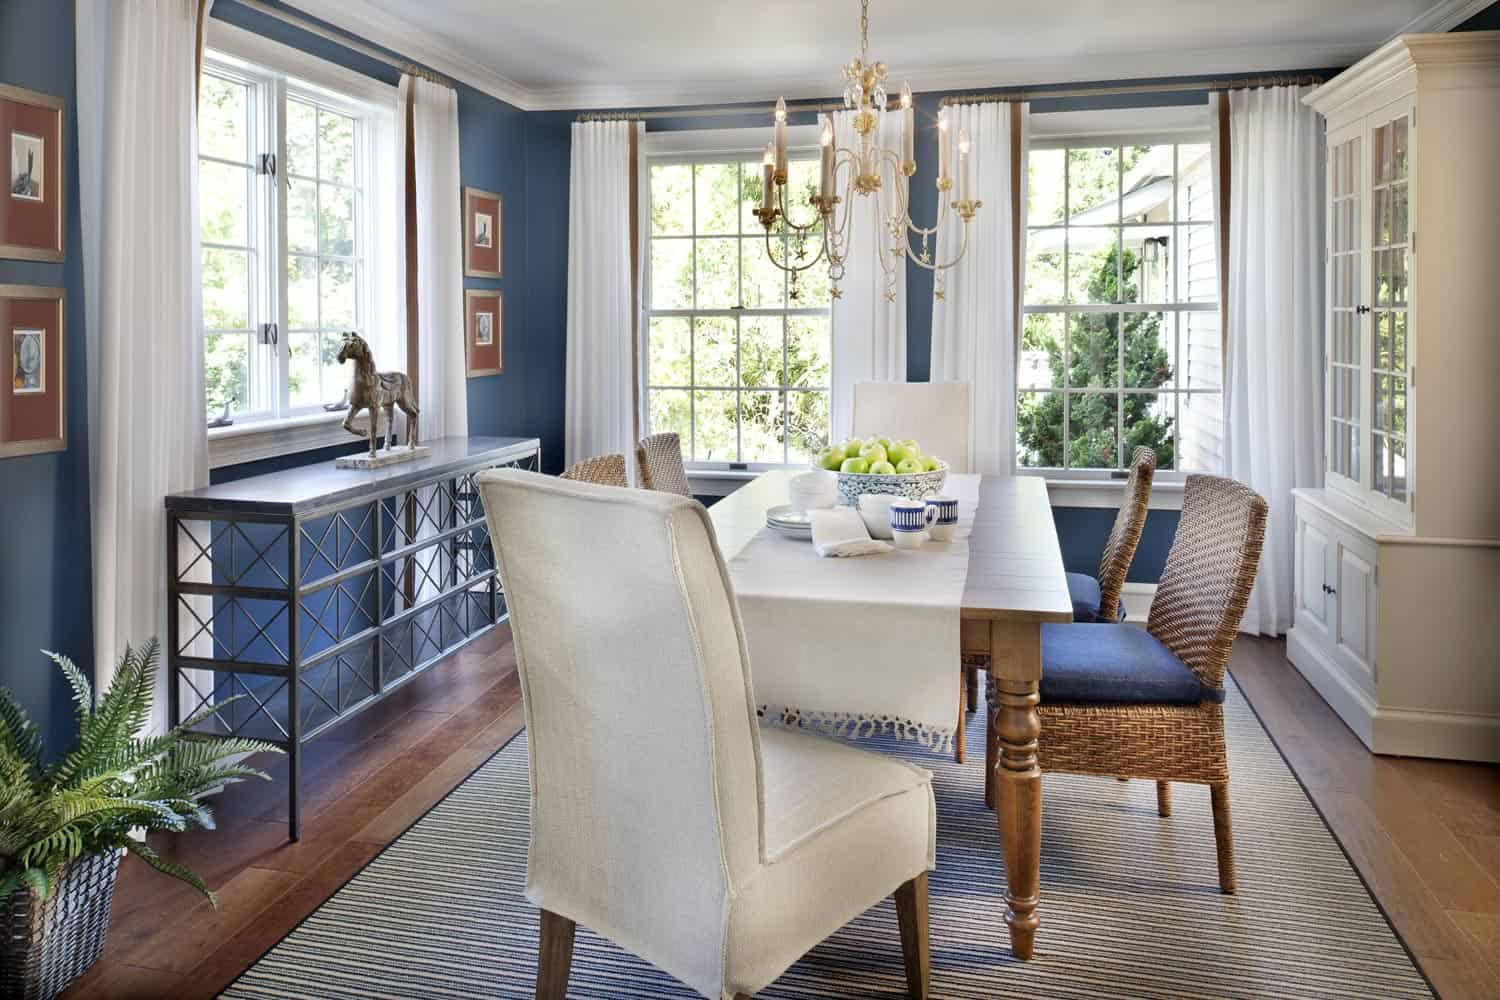 haddon-heights-dining-room-interiors-design